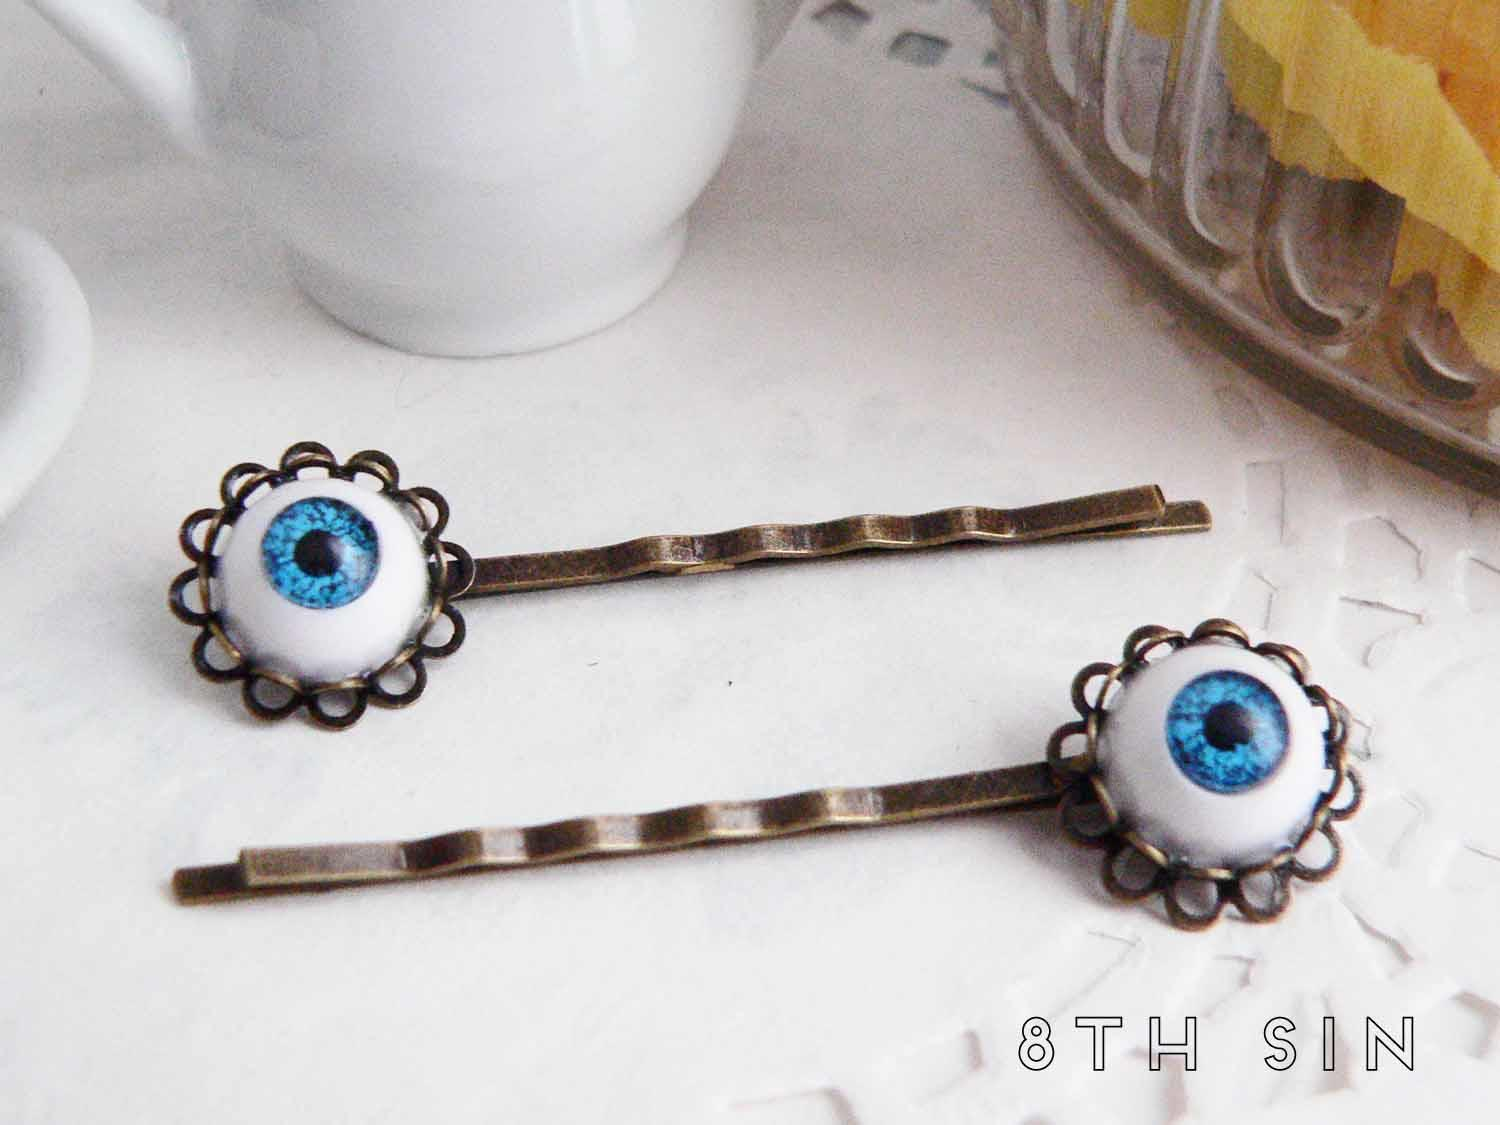 antique bronze and blue eye hair slides